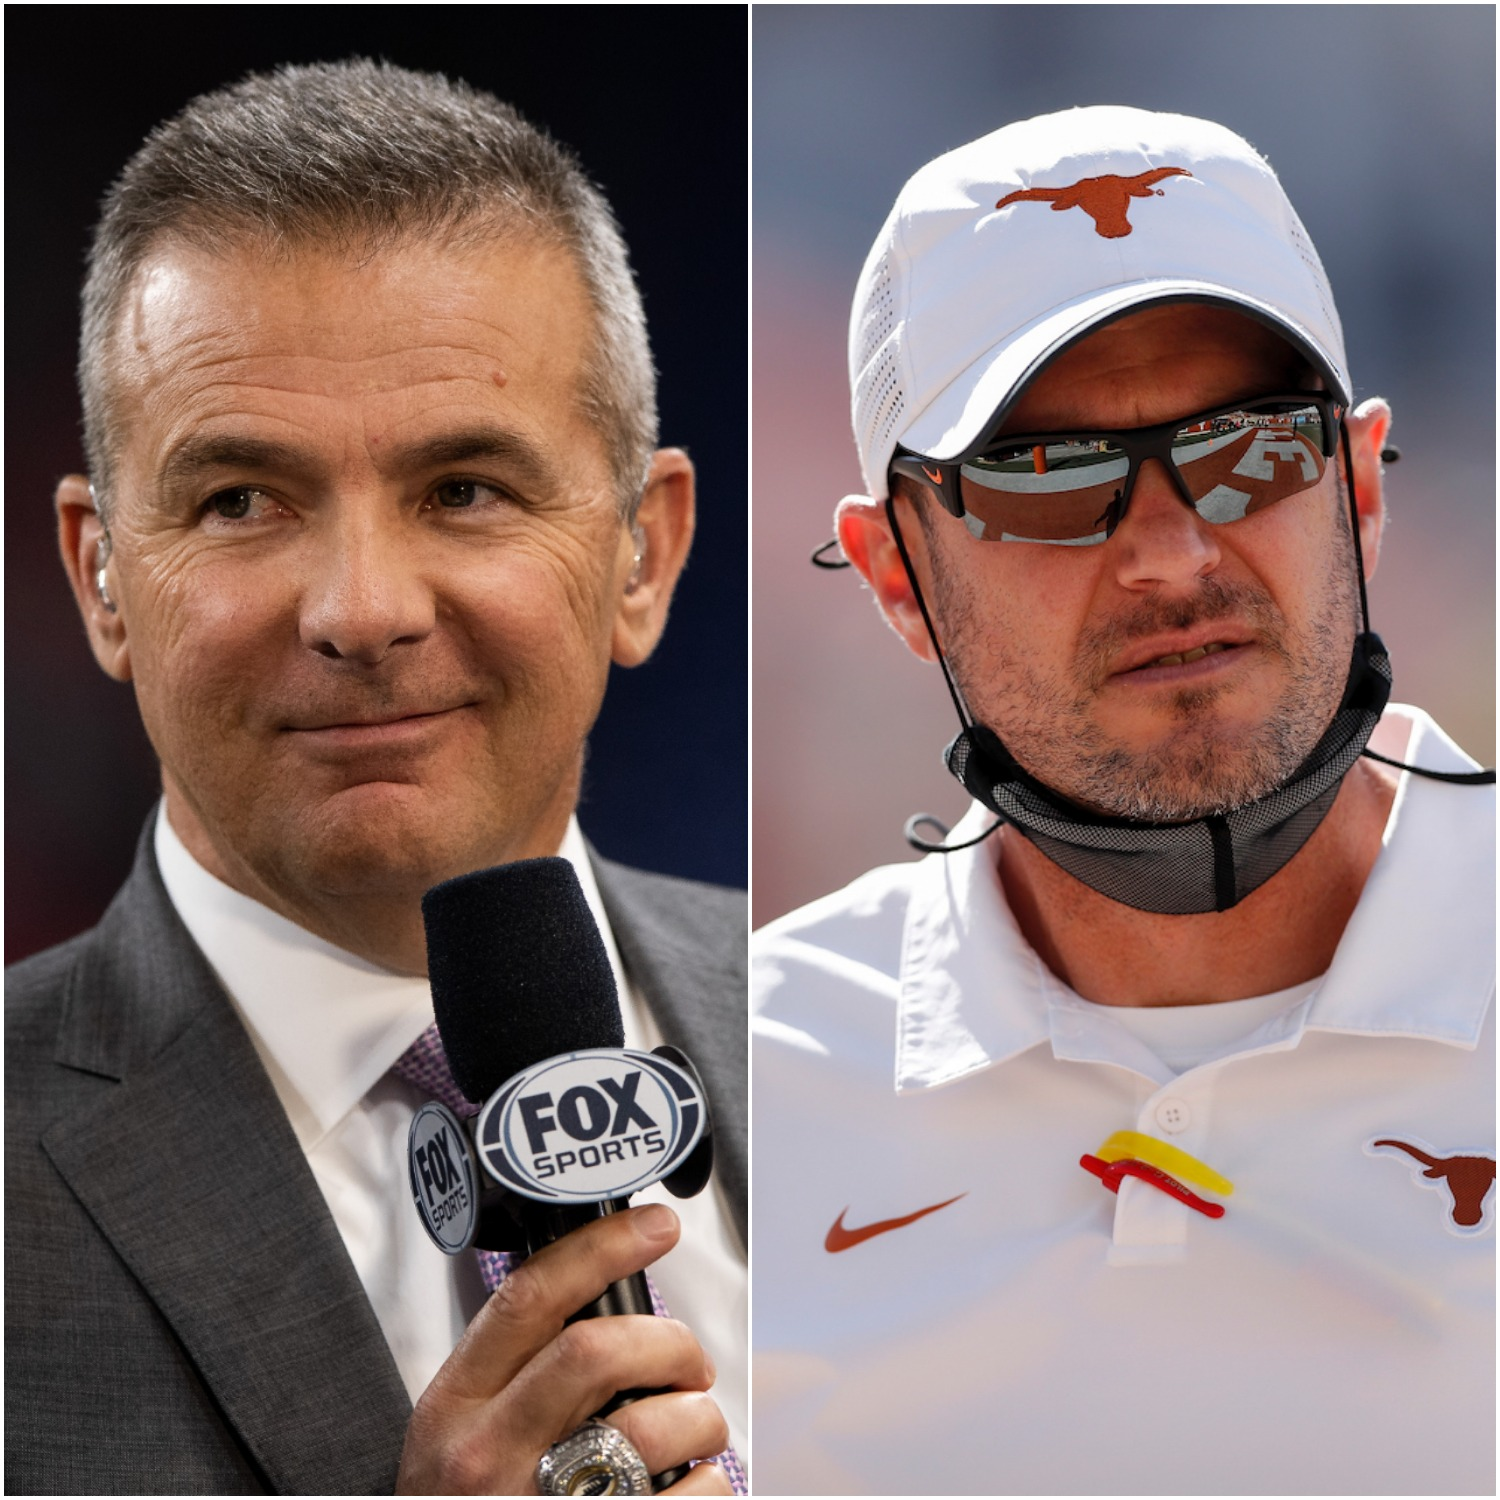 Urban Meyer and Tom Herman and the Texas Longhorns